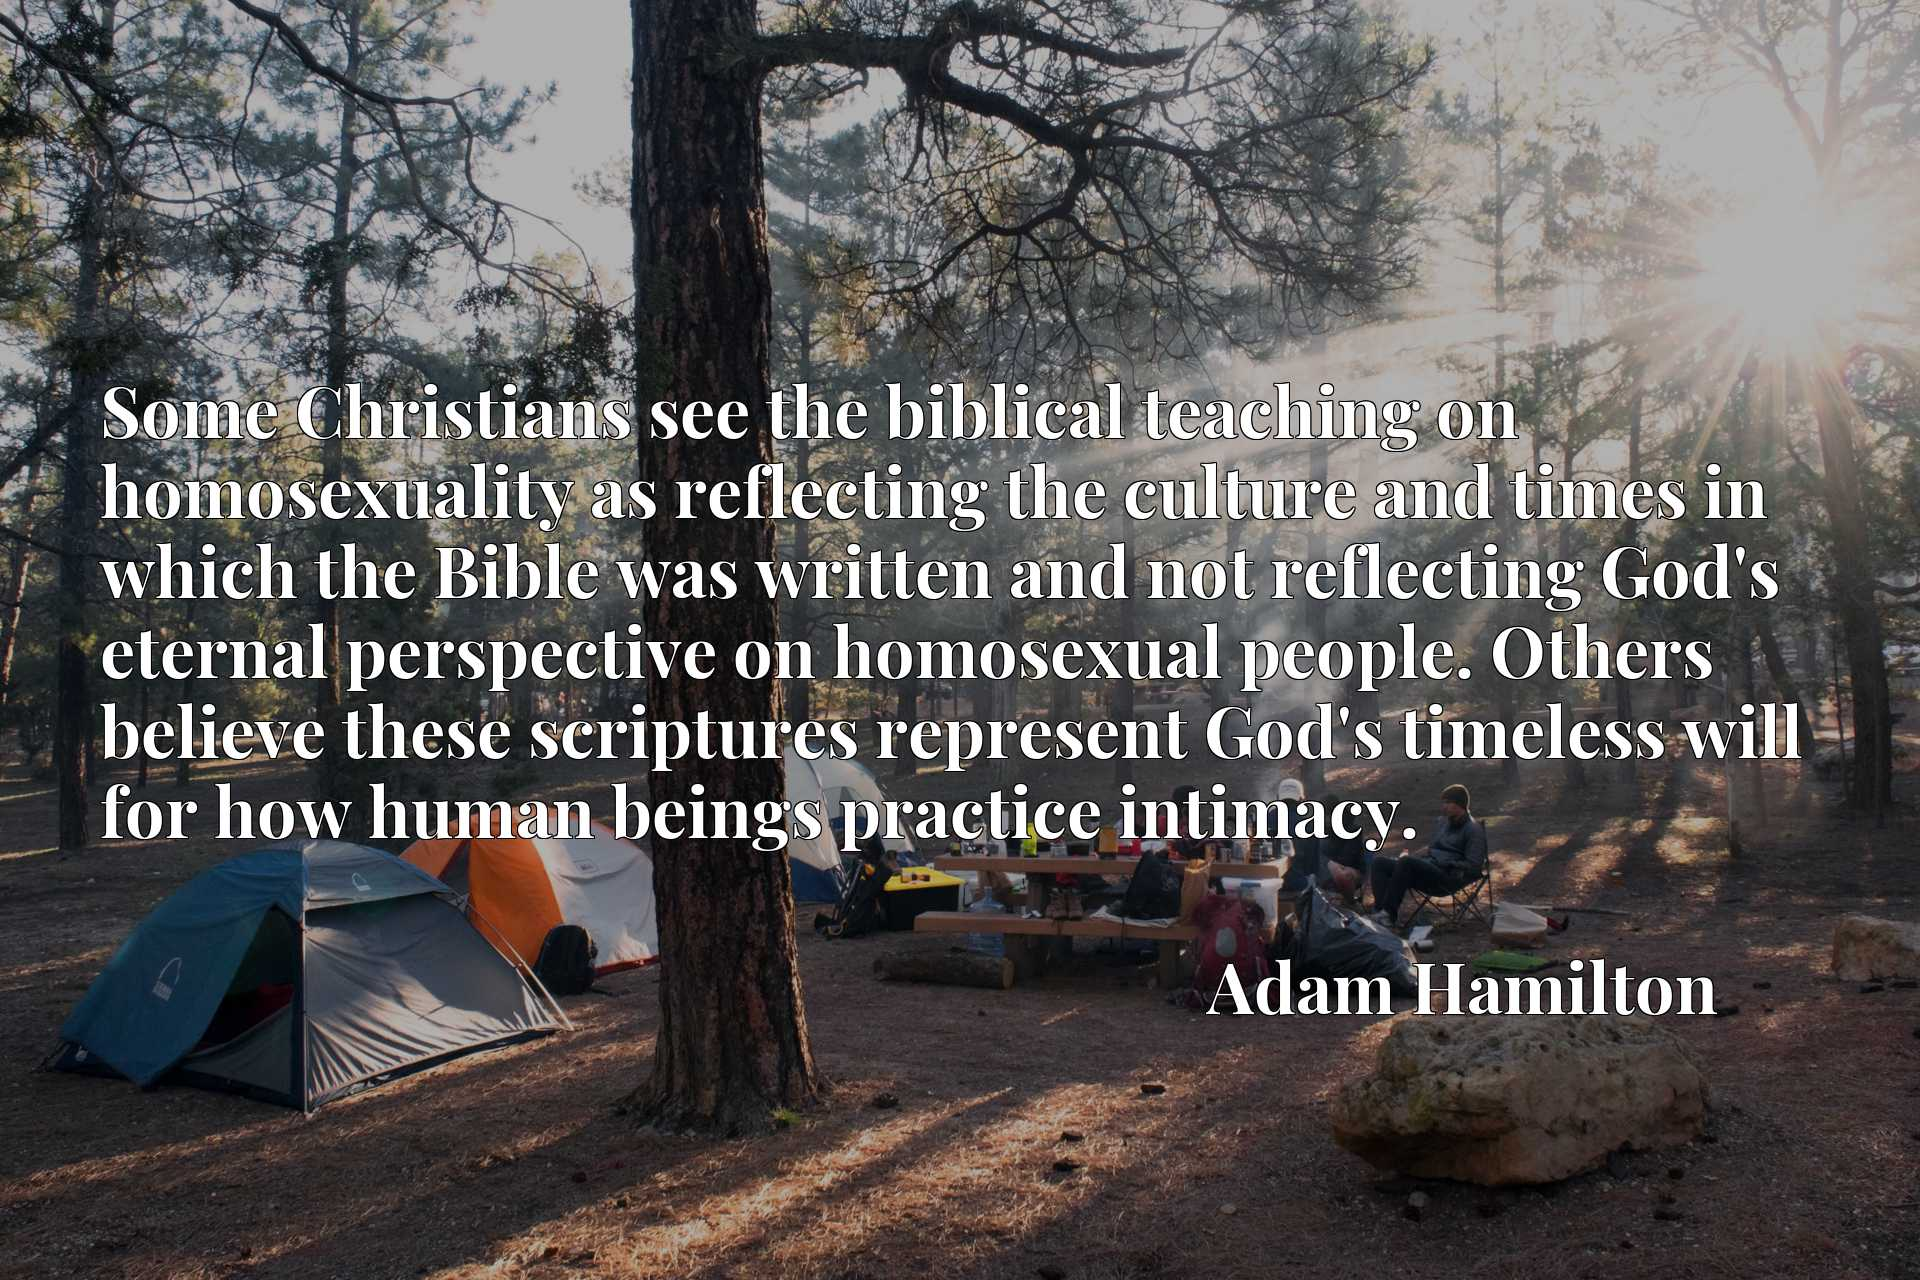 Some Christians see the biblical teaching on homosexuality as reflecting the culture and times in which the Bible was written and not reflecting God's eternal perspective on homosexual people. Others believe these scriptures represent God's timeless will for how human beings practice intimacy.